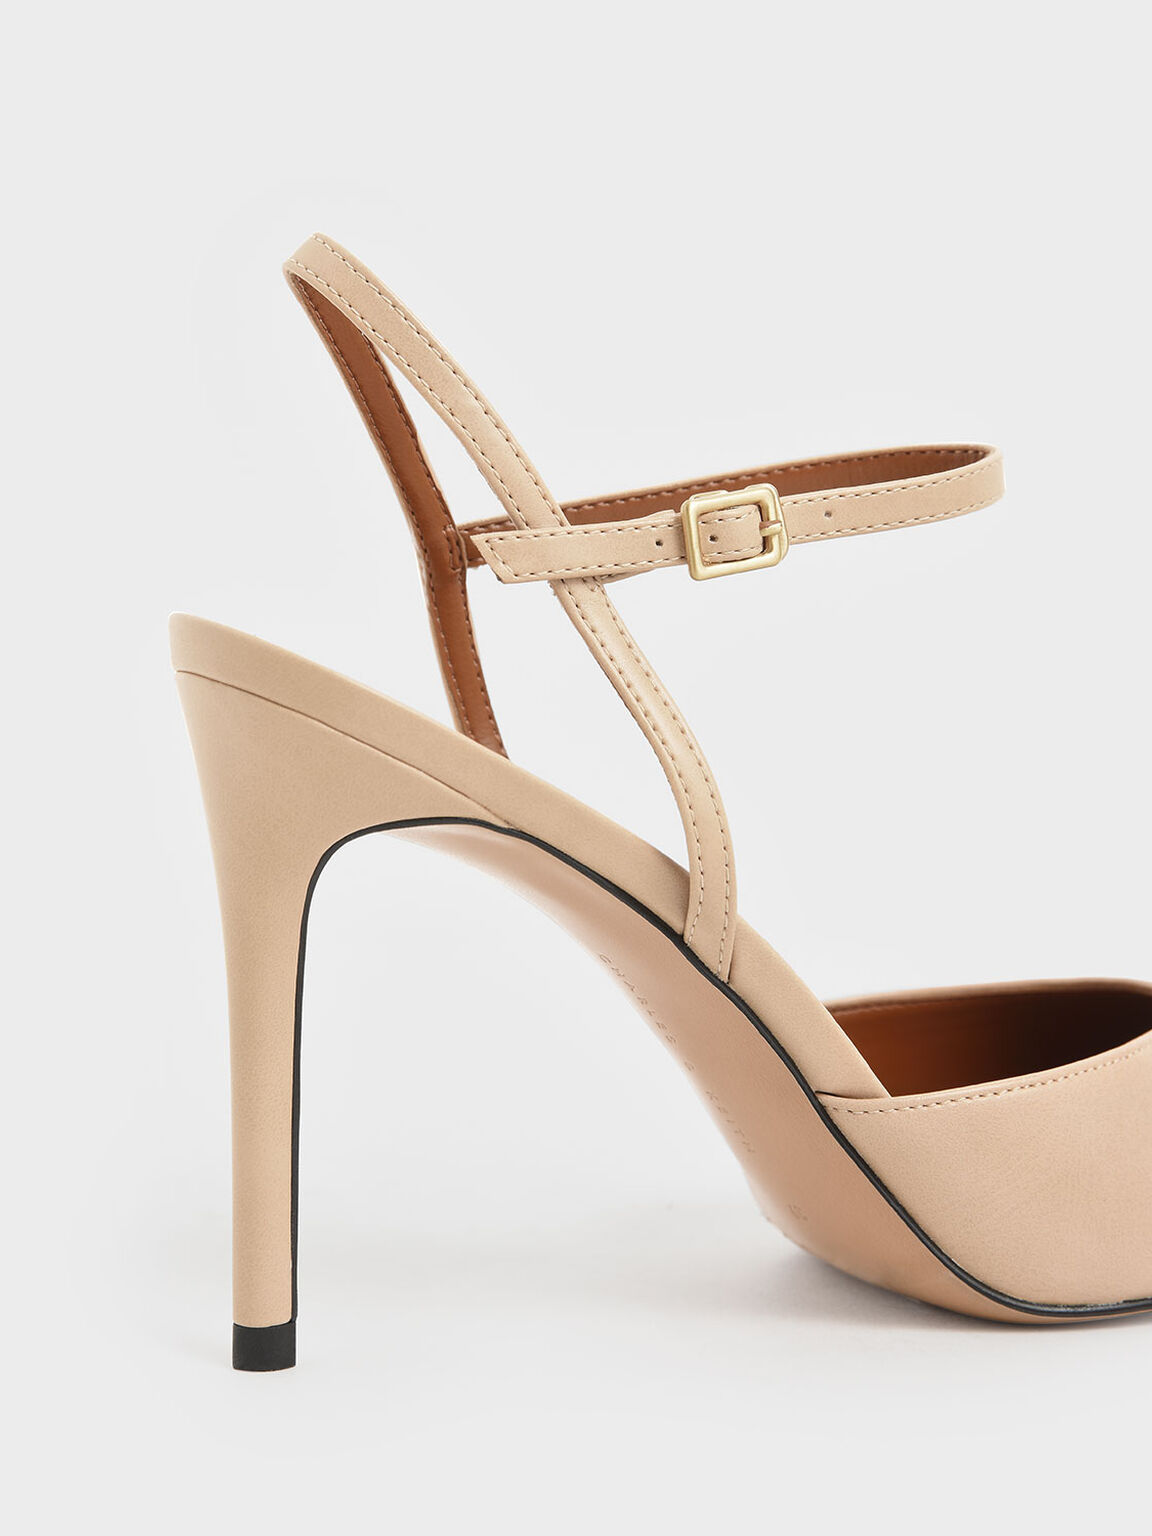 Pointed Toe Ankle Strap Pumps, Beige, hi-res